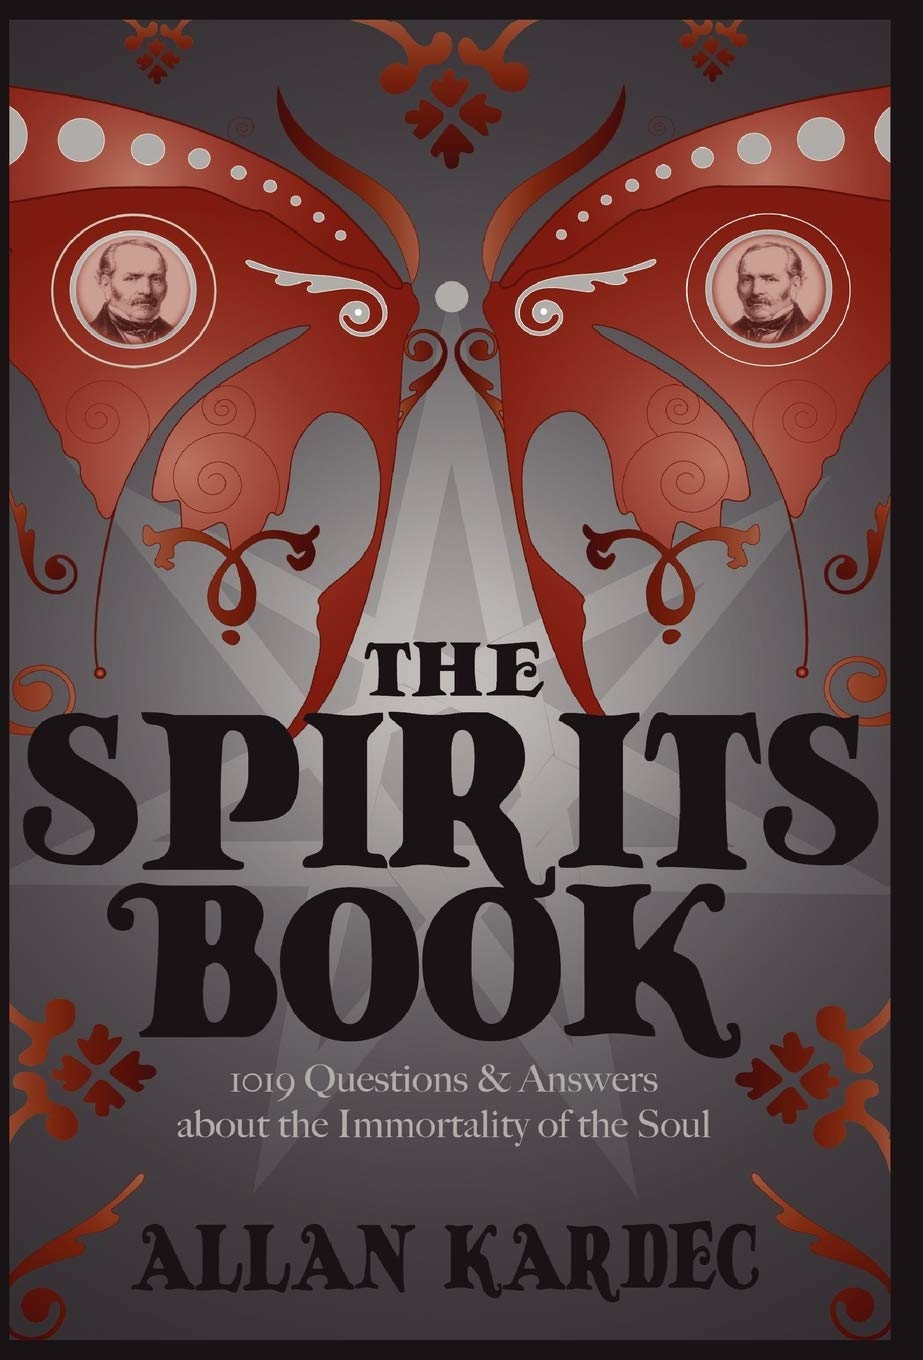 Book of Spirits (or The Spirits' Book)